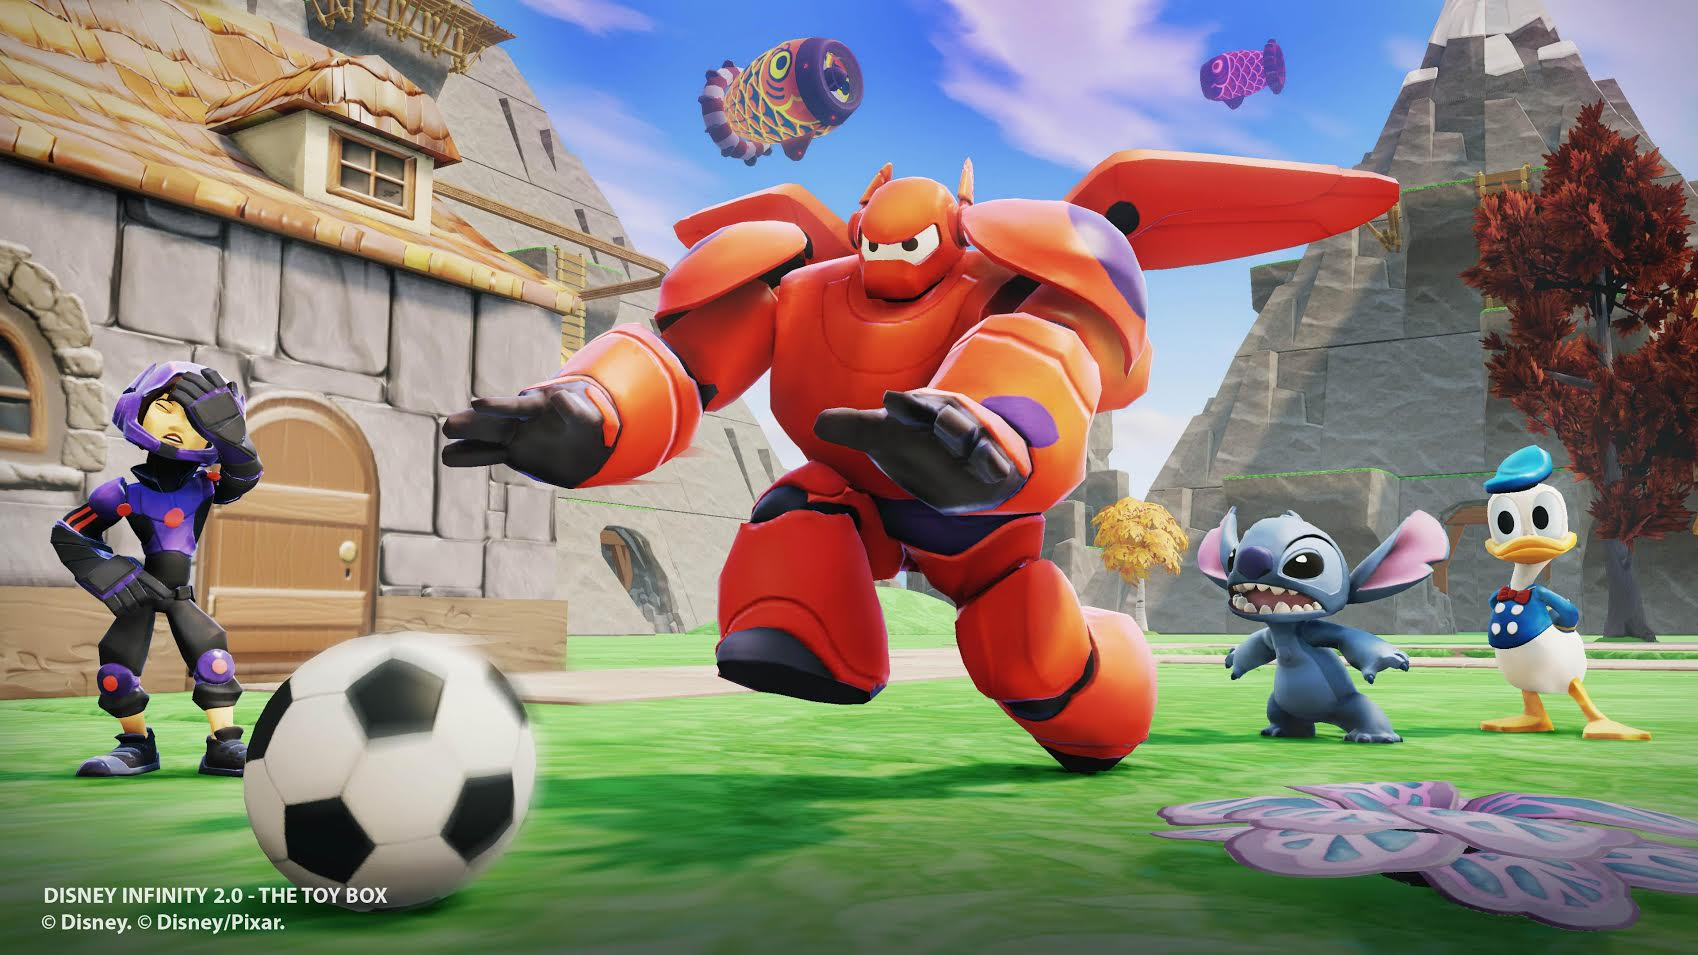 Baymax and Hiro dive into Disney Infinity 2.0